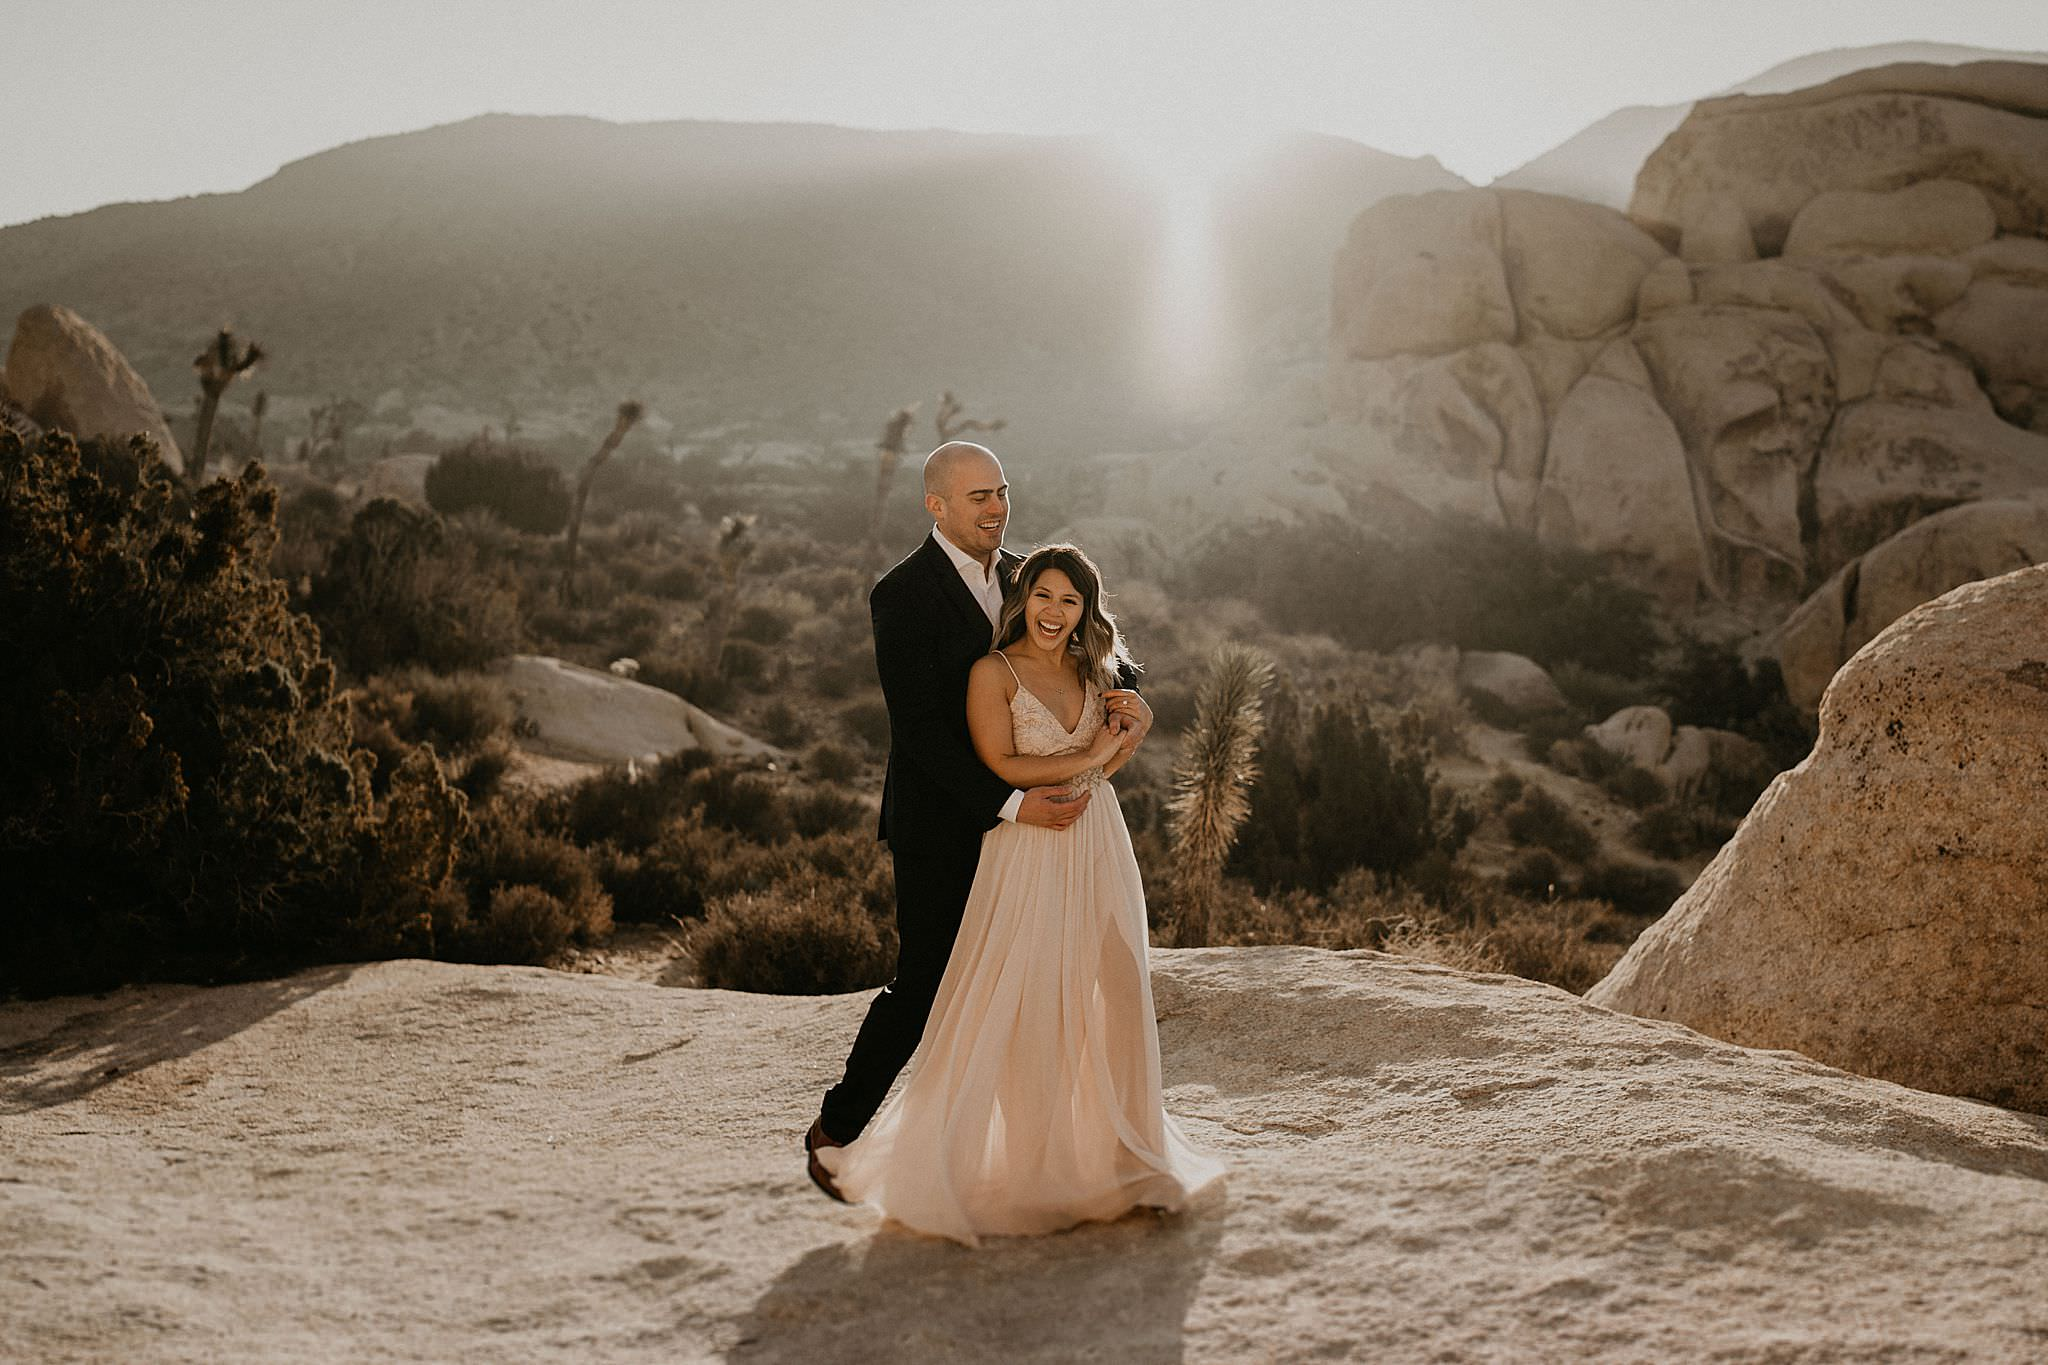 Couple eloped at Joshua Tree national park in Southern California